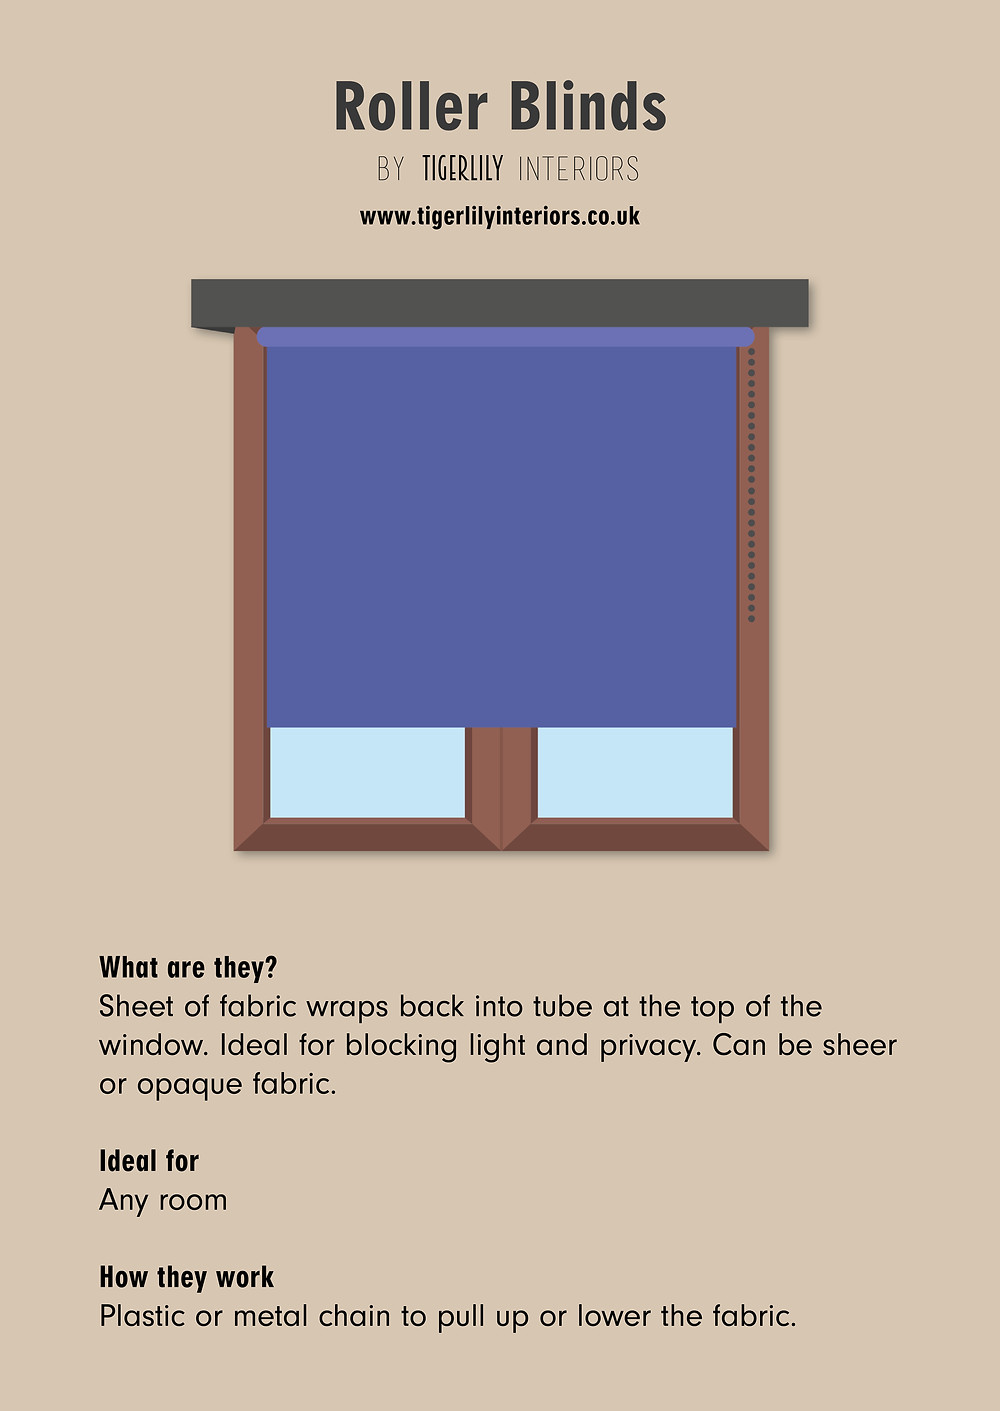 roller blinds illustration. understanding blind types and window treatments